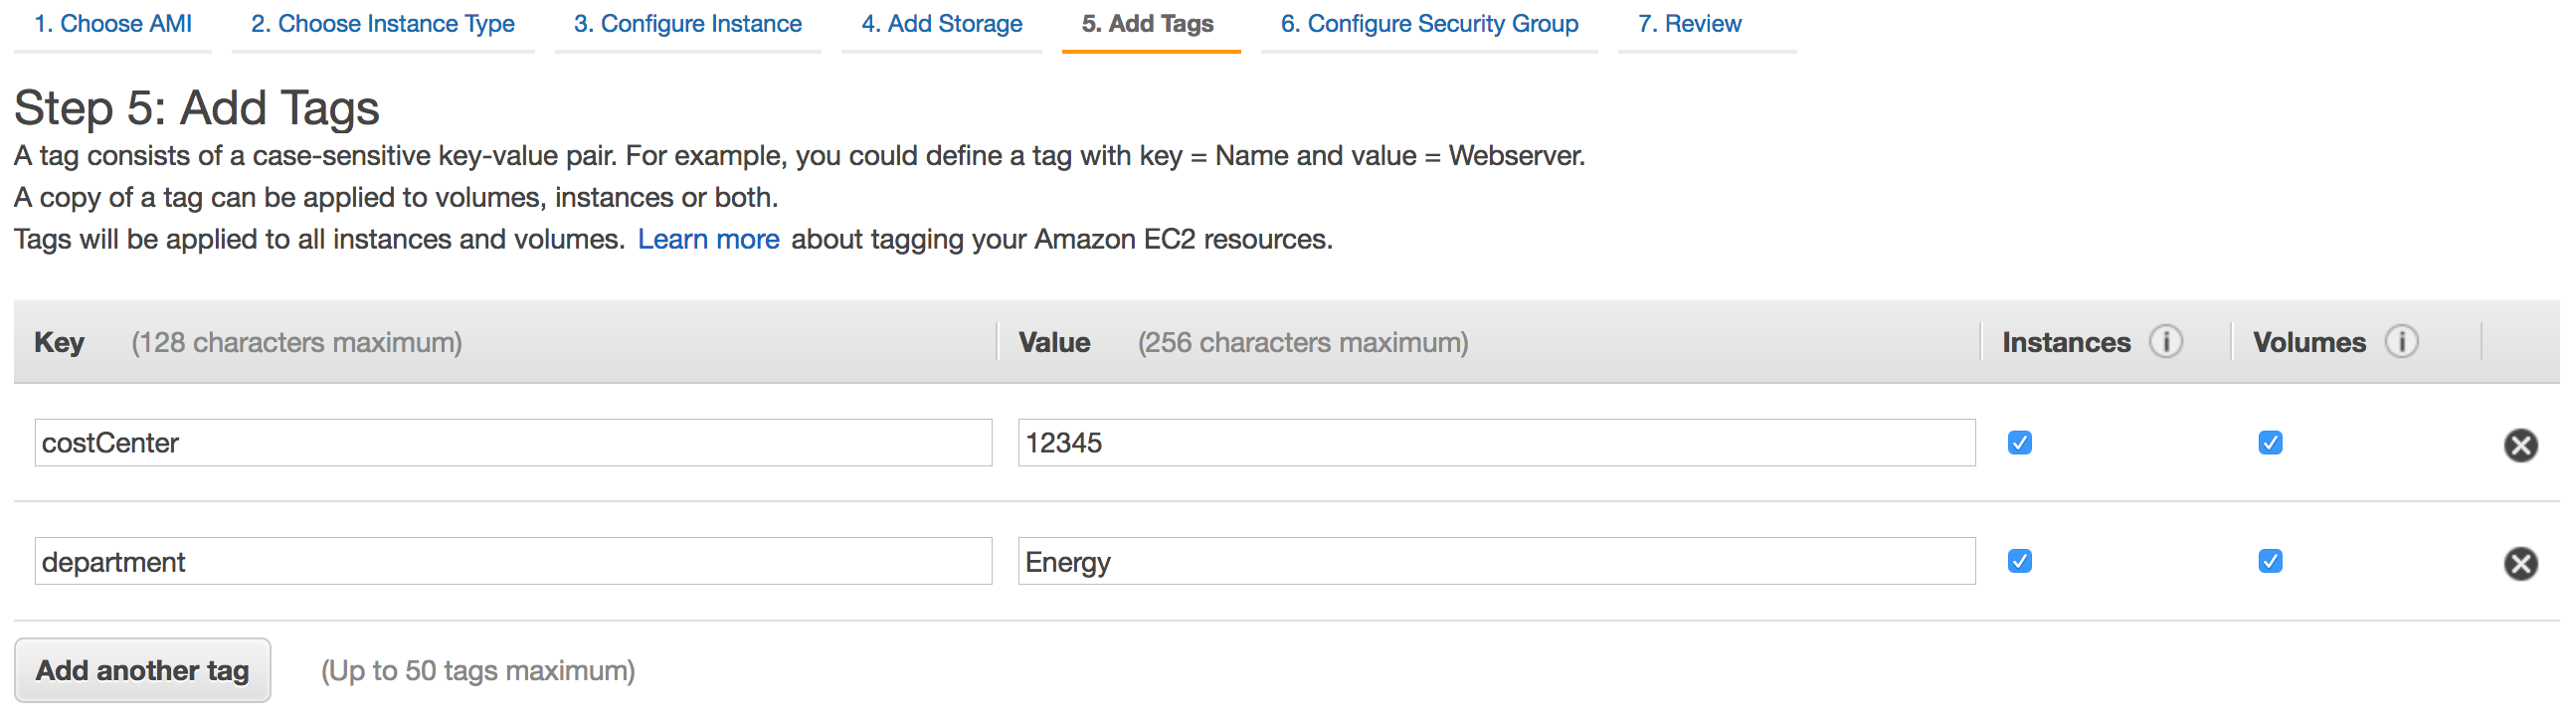 Add costCenter and department tags to the EC2 instance configuration.